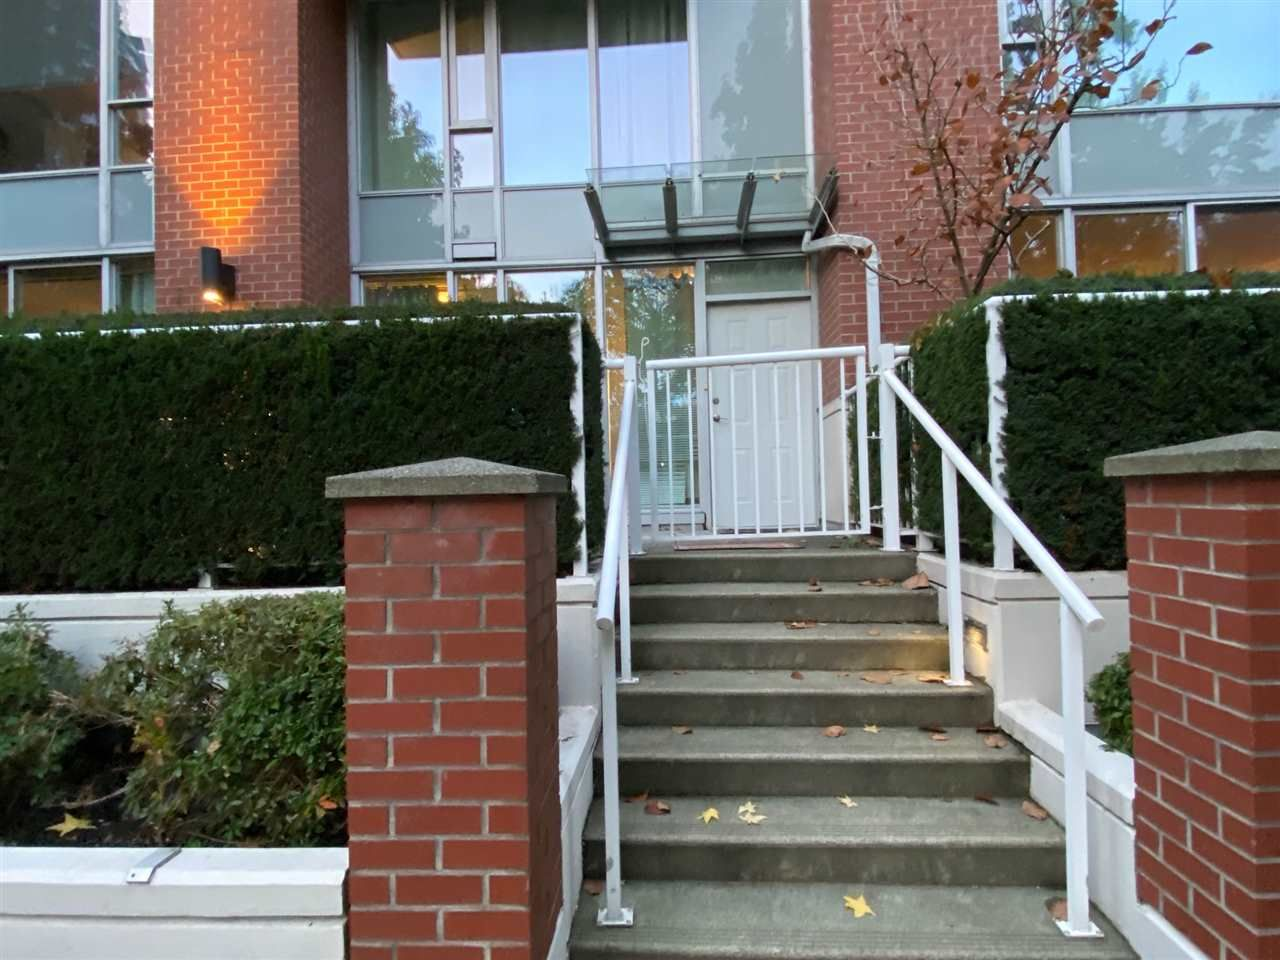 """Main Photo: 39 KEEFER Place in Vancouver: Downtown VW Townhouse for sale in """"The Taylor"""" (Vancouver West)  : MLS®# R2514052"""